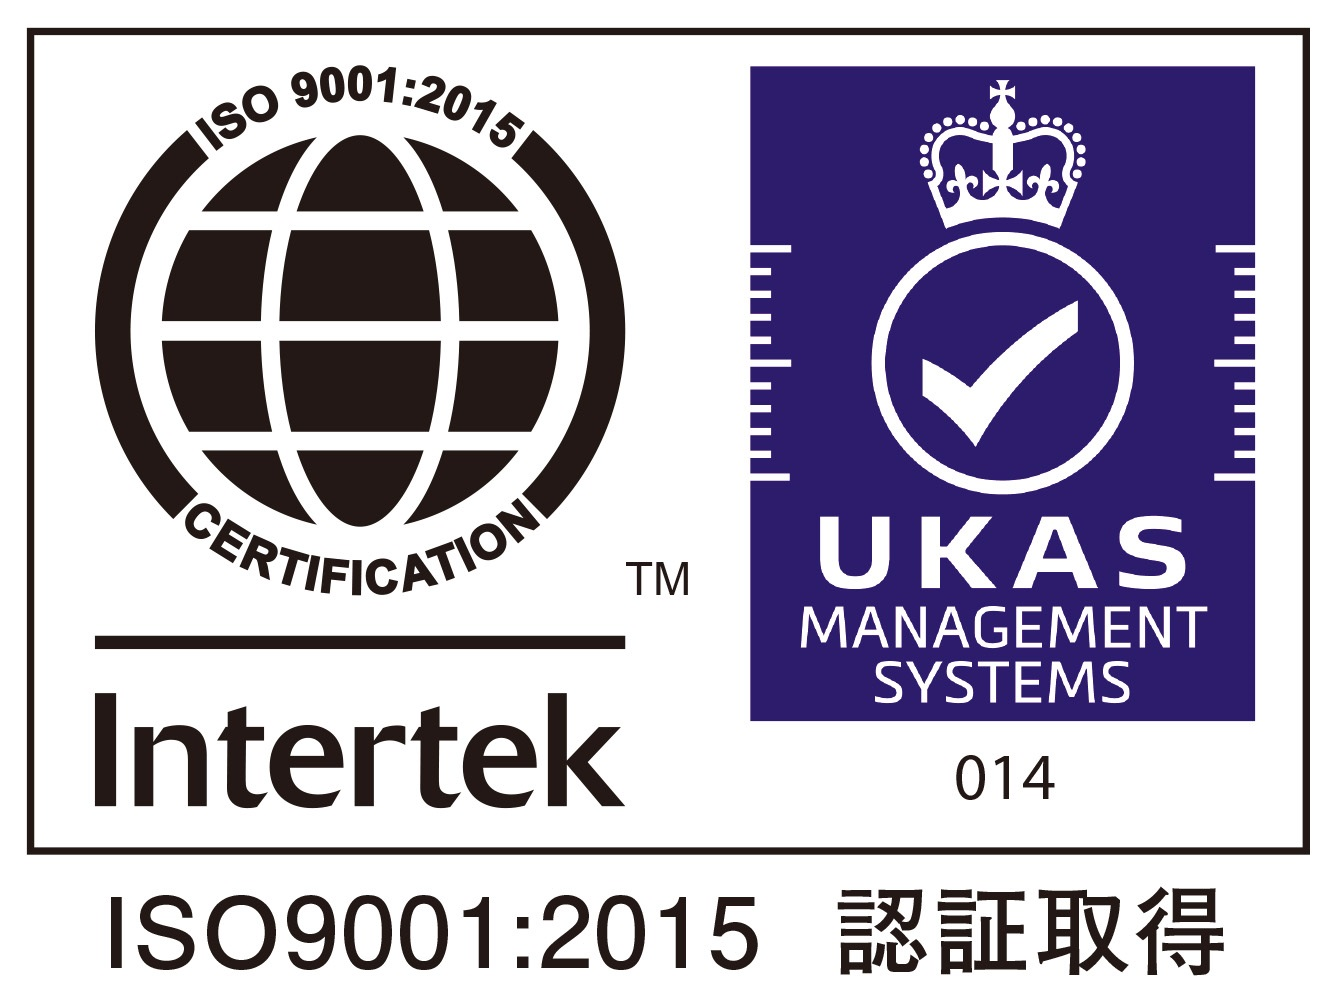 ISO9001 認証登録証明書